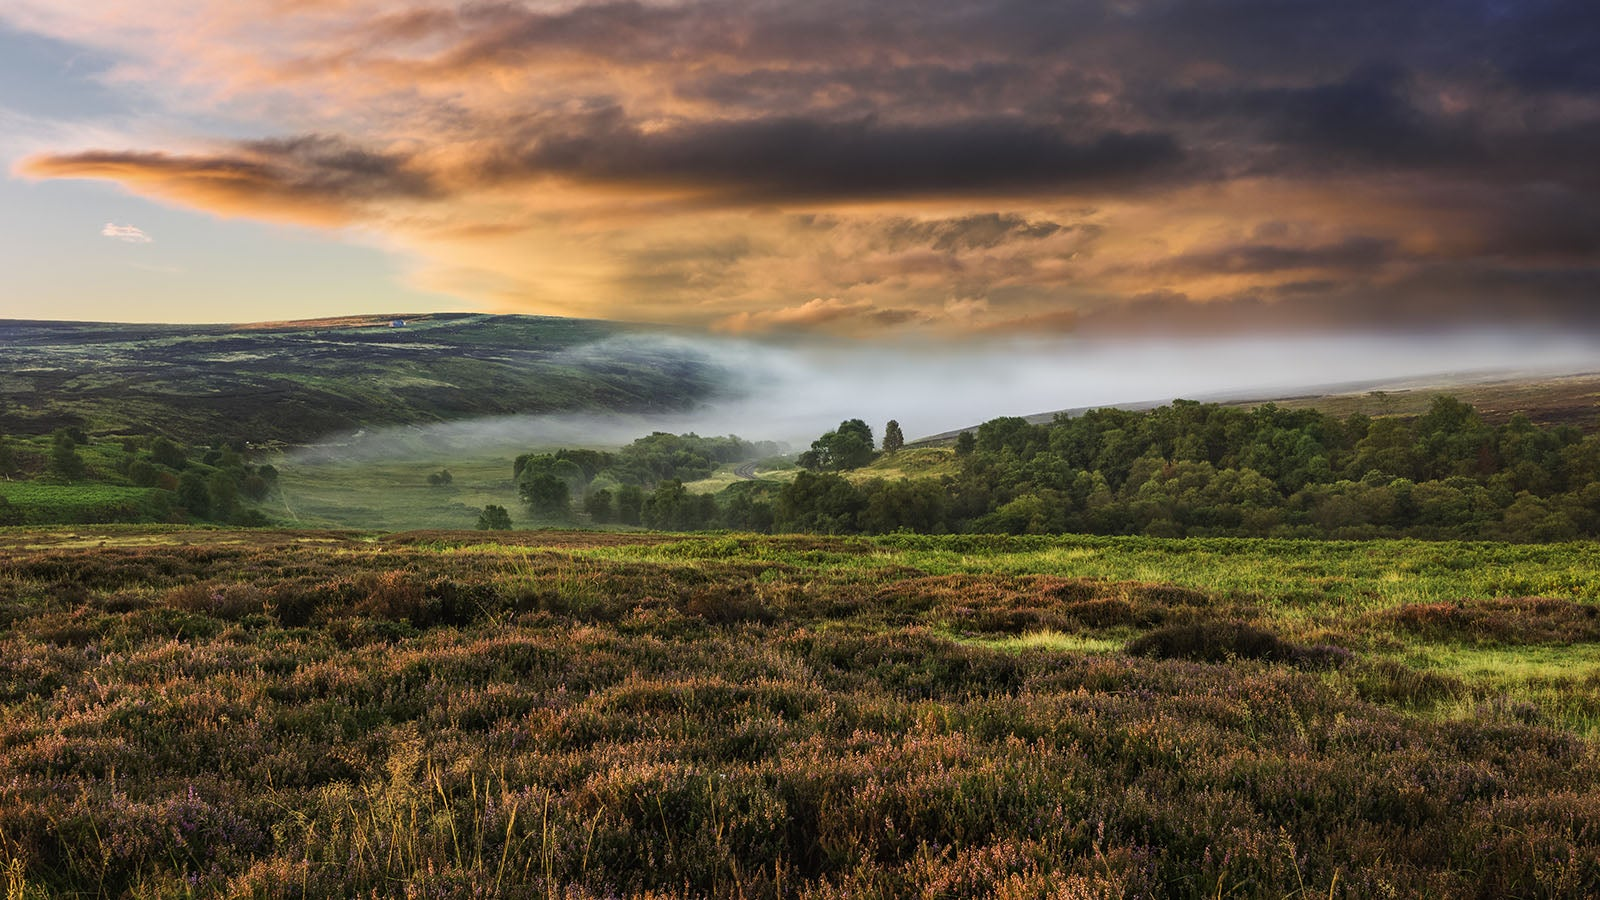 Photograph of the Yorkshire Moors